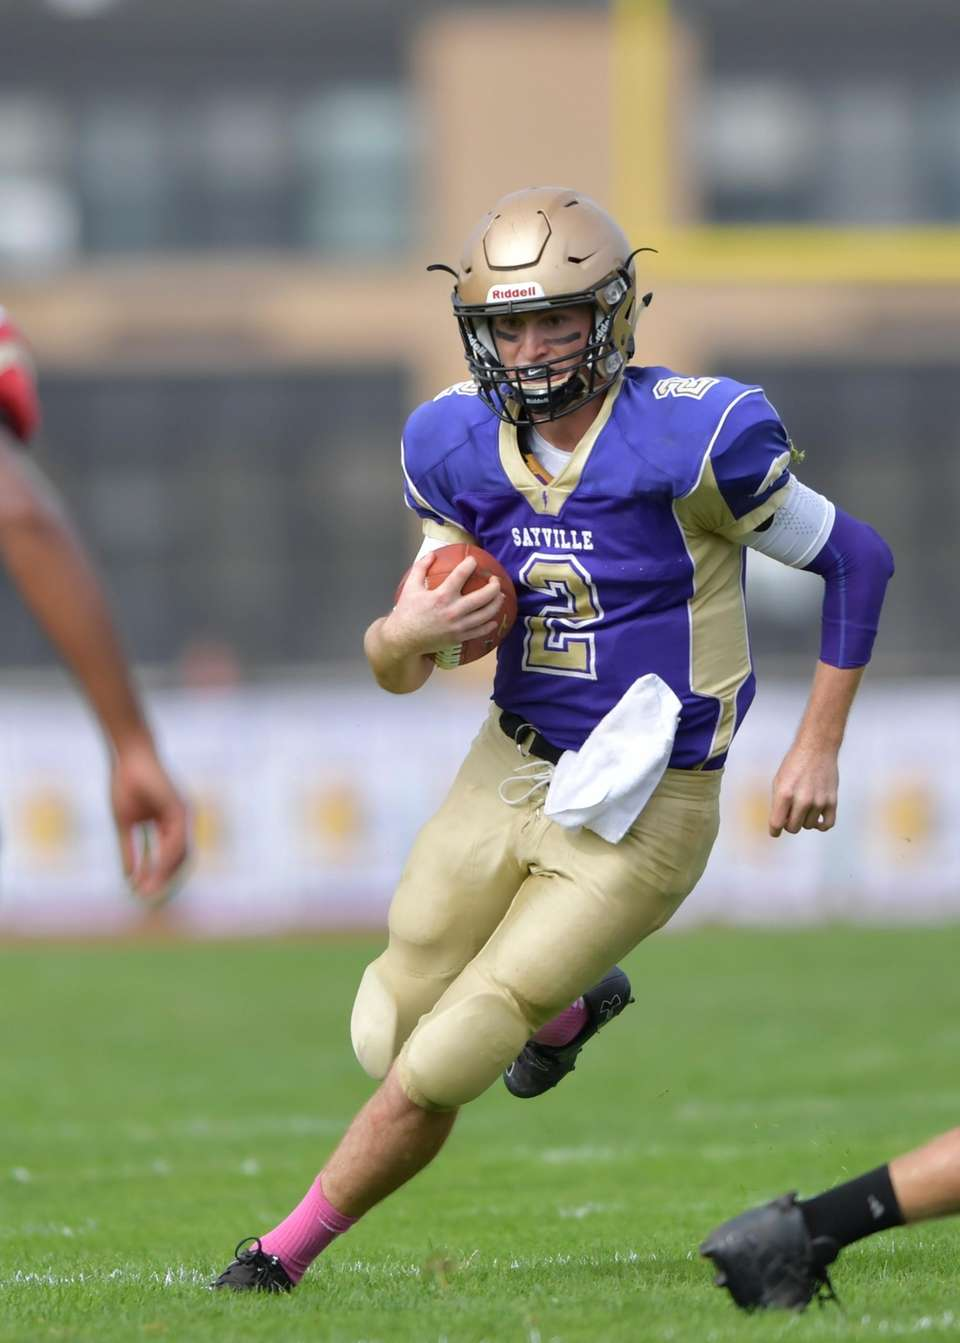 Sayville's Jacob Cheshire carriers the ball during the